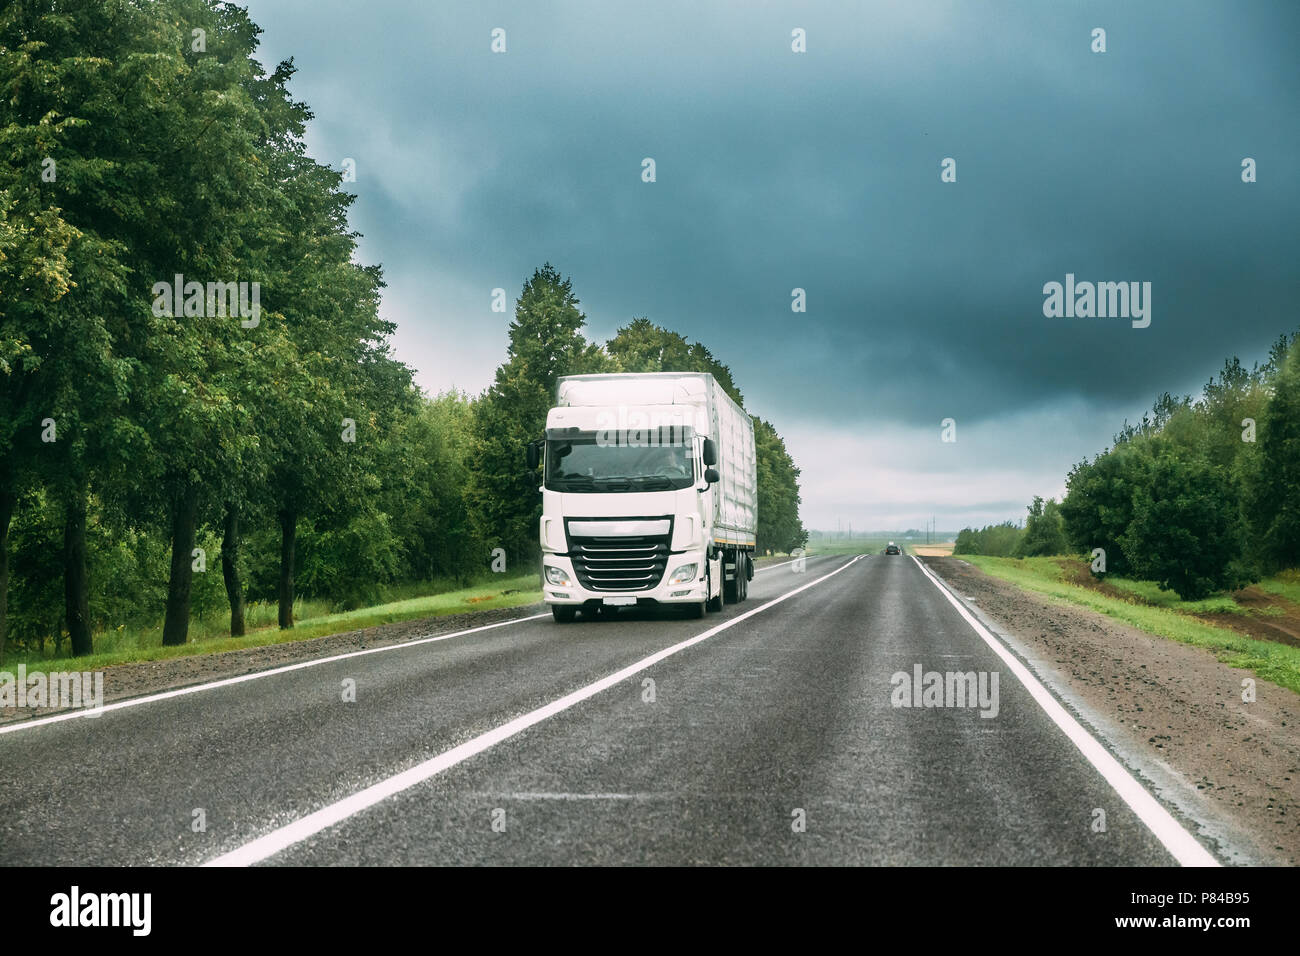 Traction Unit Stock Photos & Traction Unit Stock Images - Alamy